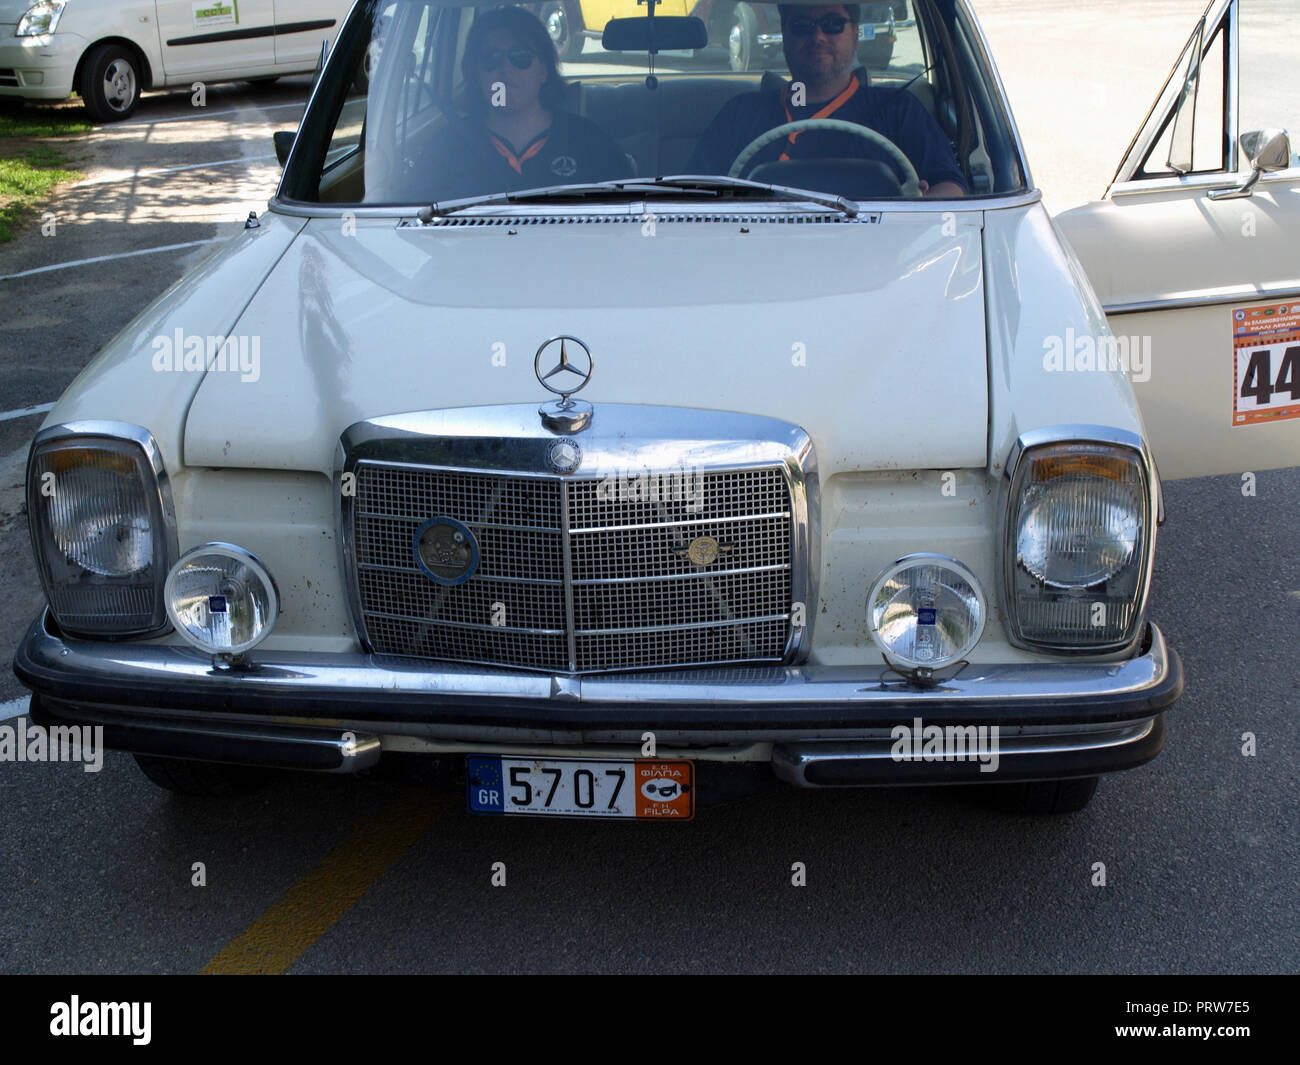 Vintage Mercedes on display at the 8th Hellenic Bulgarian LEKAM classic car rally at the Acharavi Park Hotel, Acharavi, Corfu, Greece - Stock Image